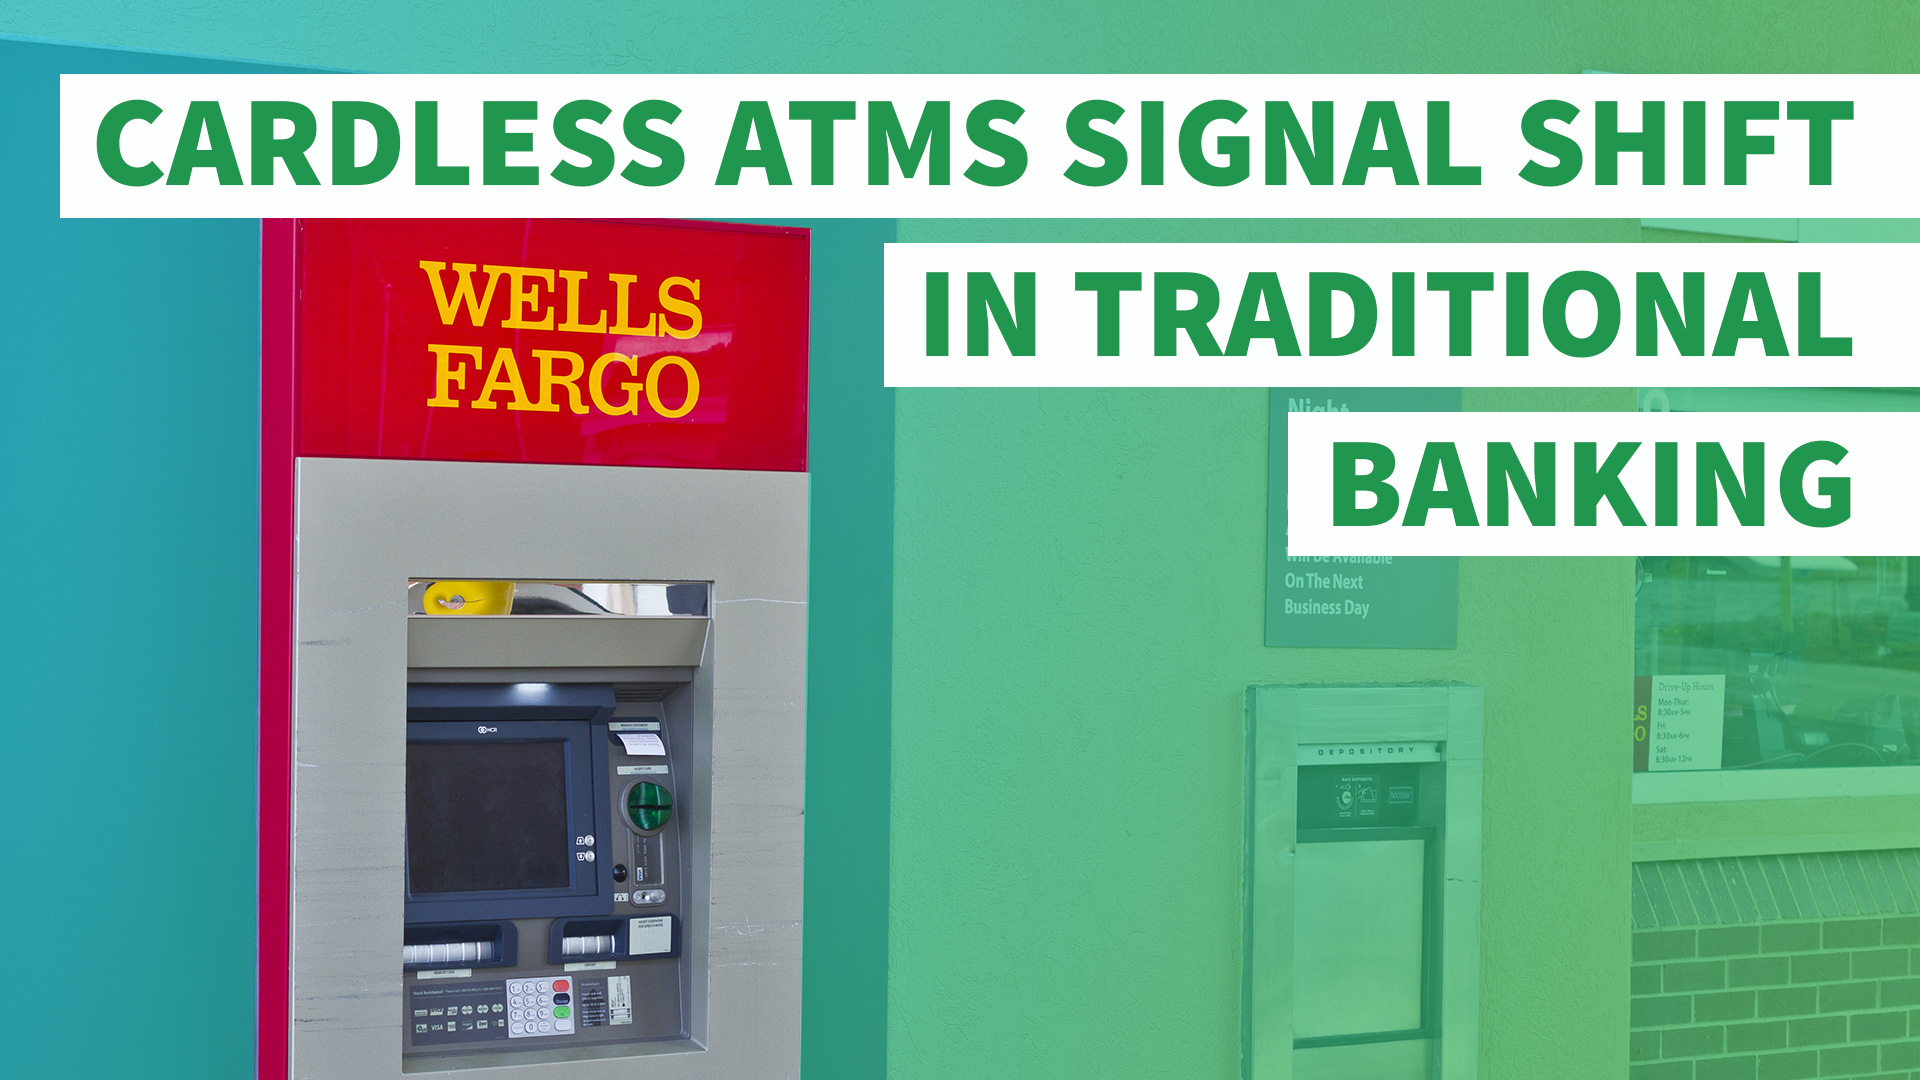 Wells Fargo's Cardless ATMs Continue Shift in Traditional